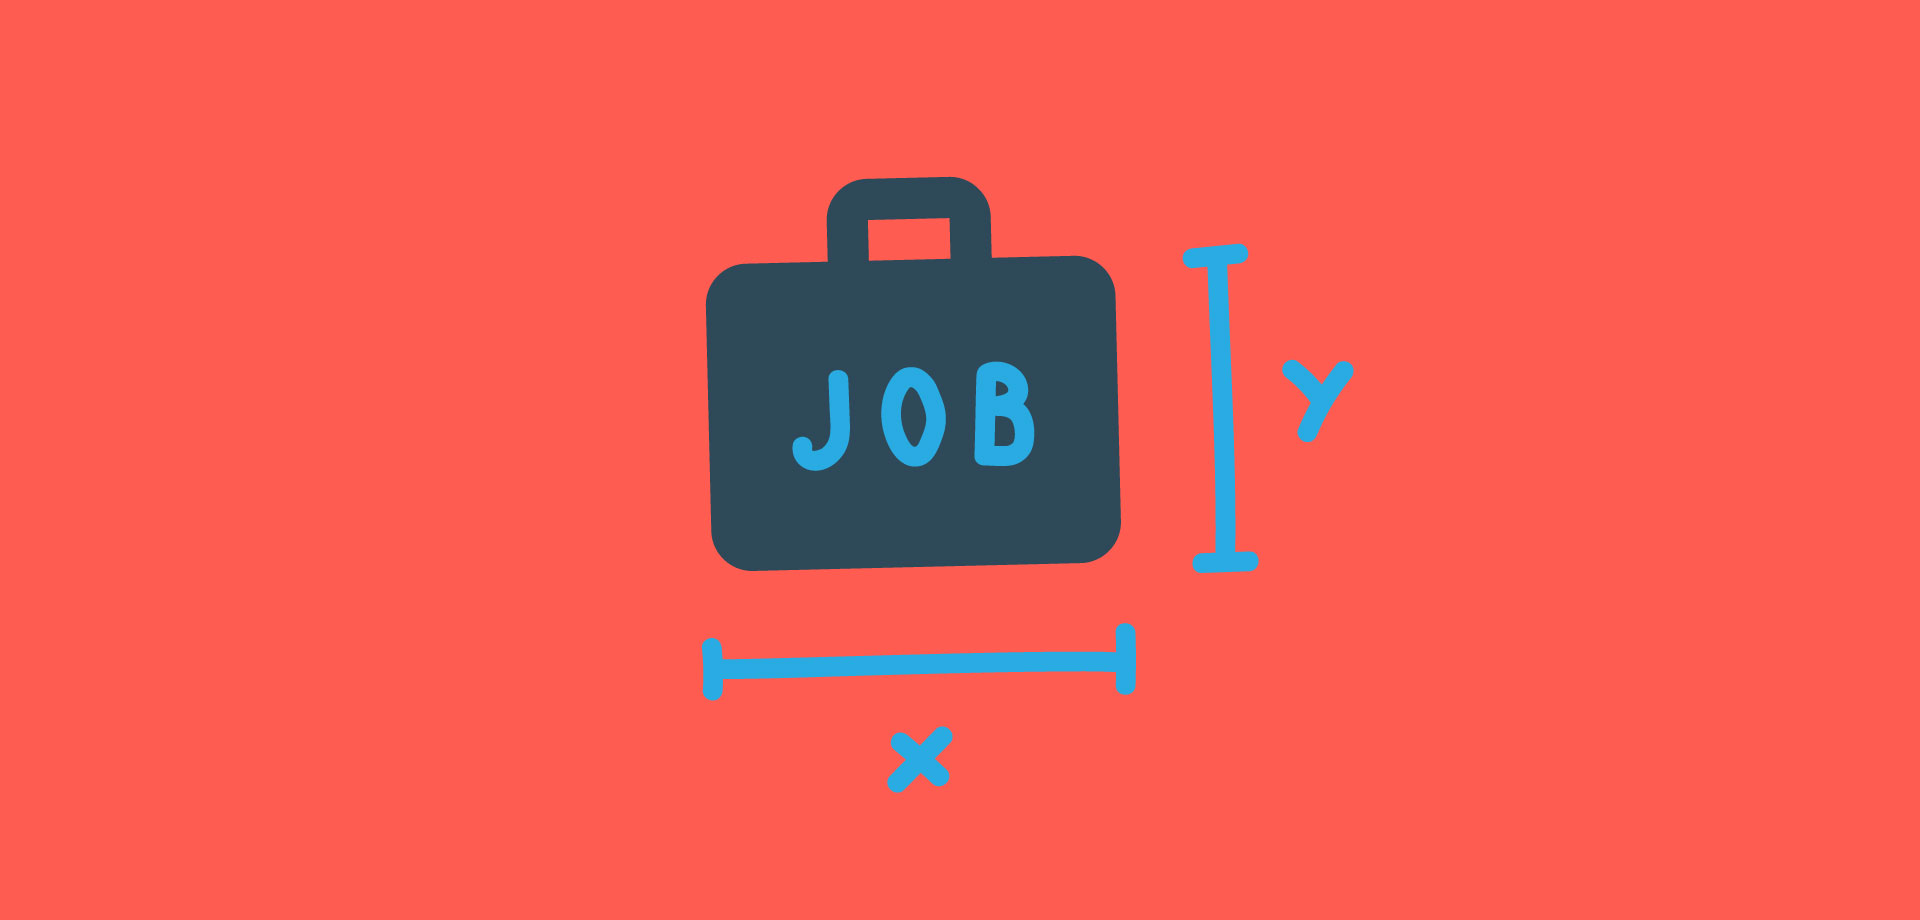 Job search beginning with what job should I do? animation - Magnet.me Guide